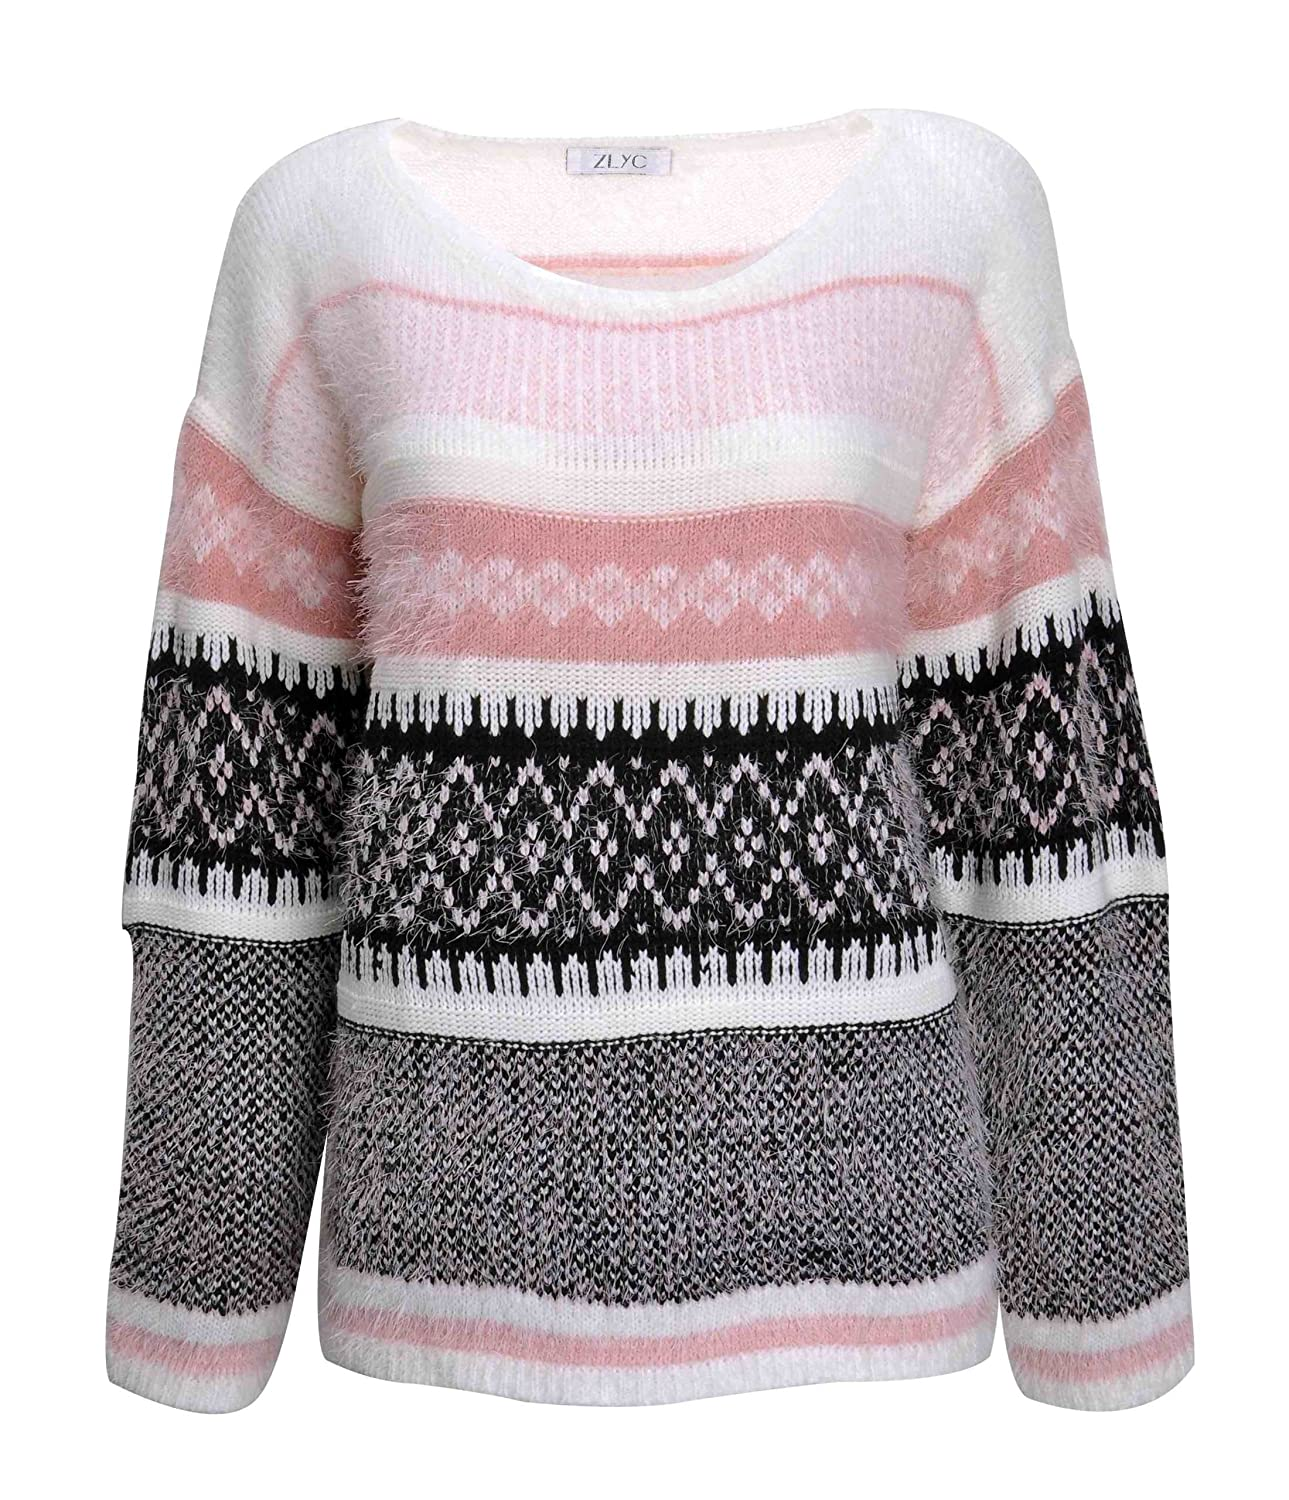 ZLYC Women Fluffy Aztec Space Dye Knitted Pullover Jumper Geometric Casual Sweater